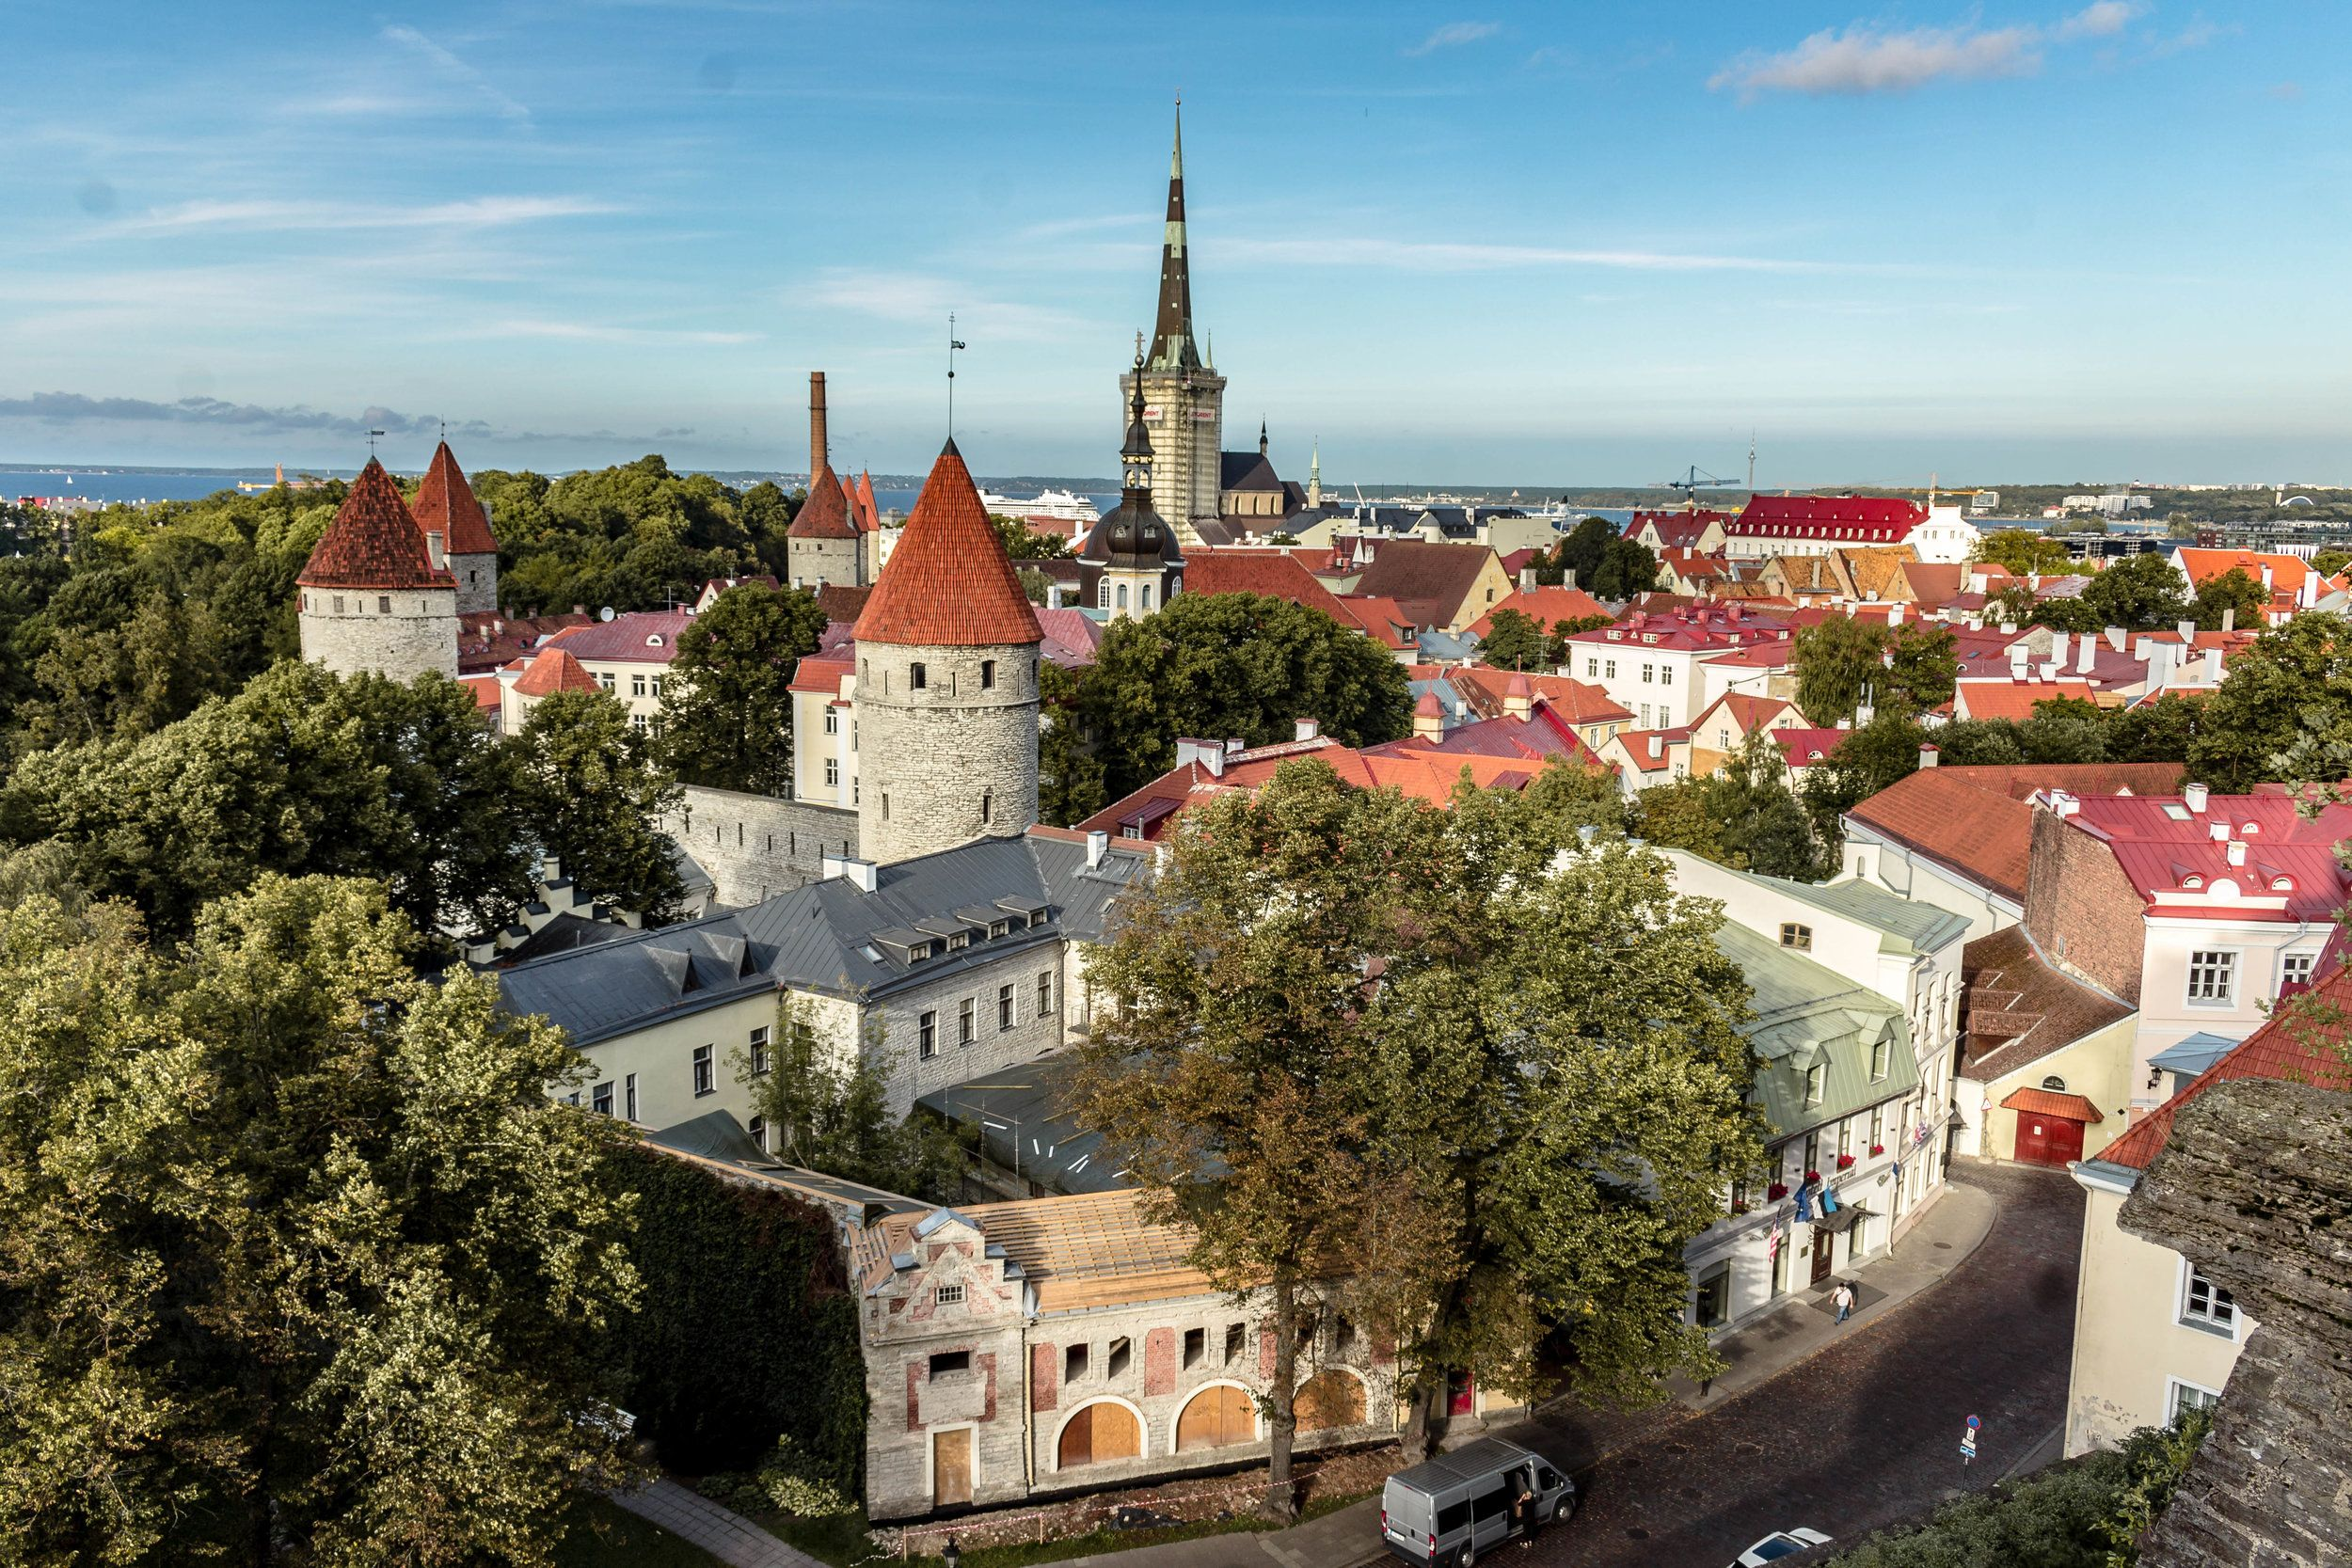 With Less Than 500 000 Inhabitants Tallinn Is A Small City Christmas Markets Europe Baltic Cruise Best Christmas Markets